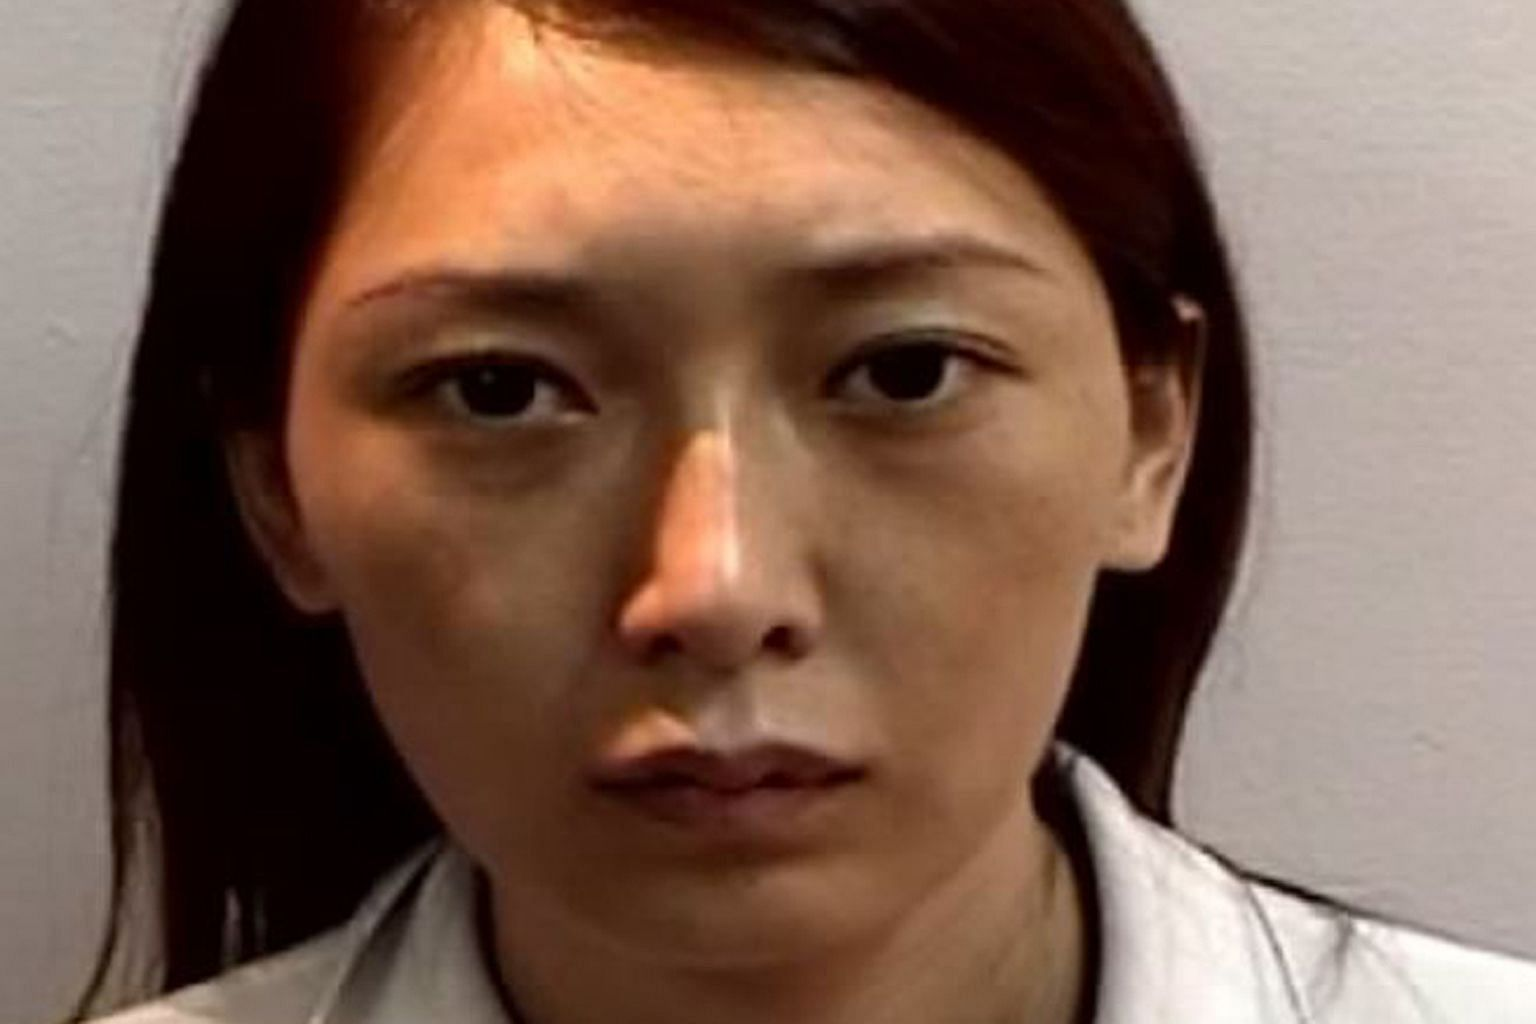 Han Jing has been sentenced to 11 months' jail, plus another 12 weeks' jail in lieu of caning.